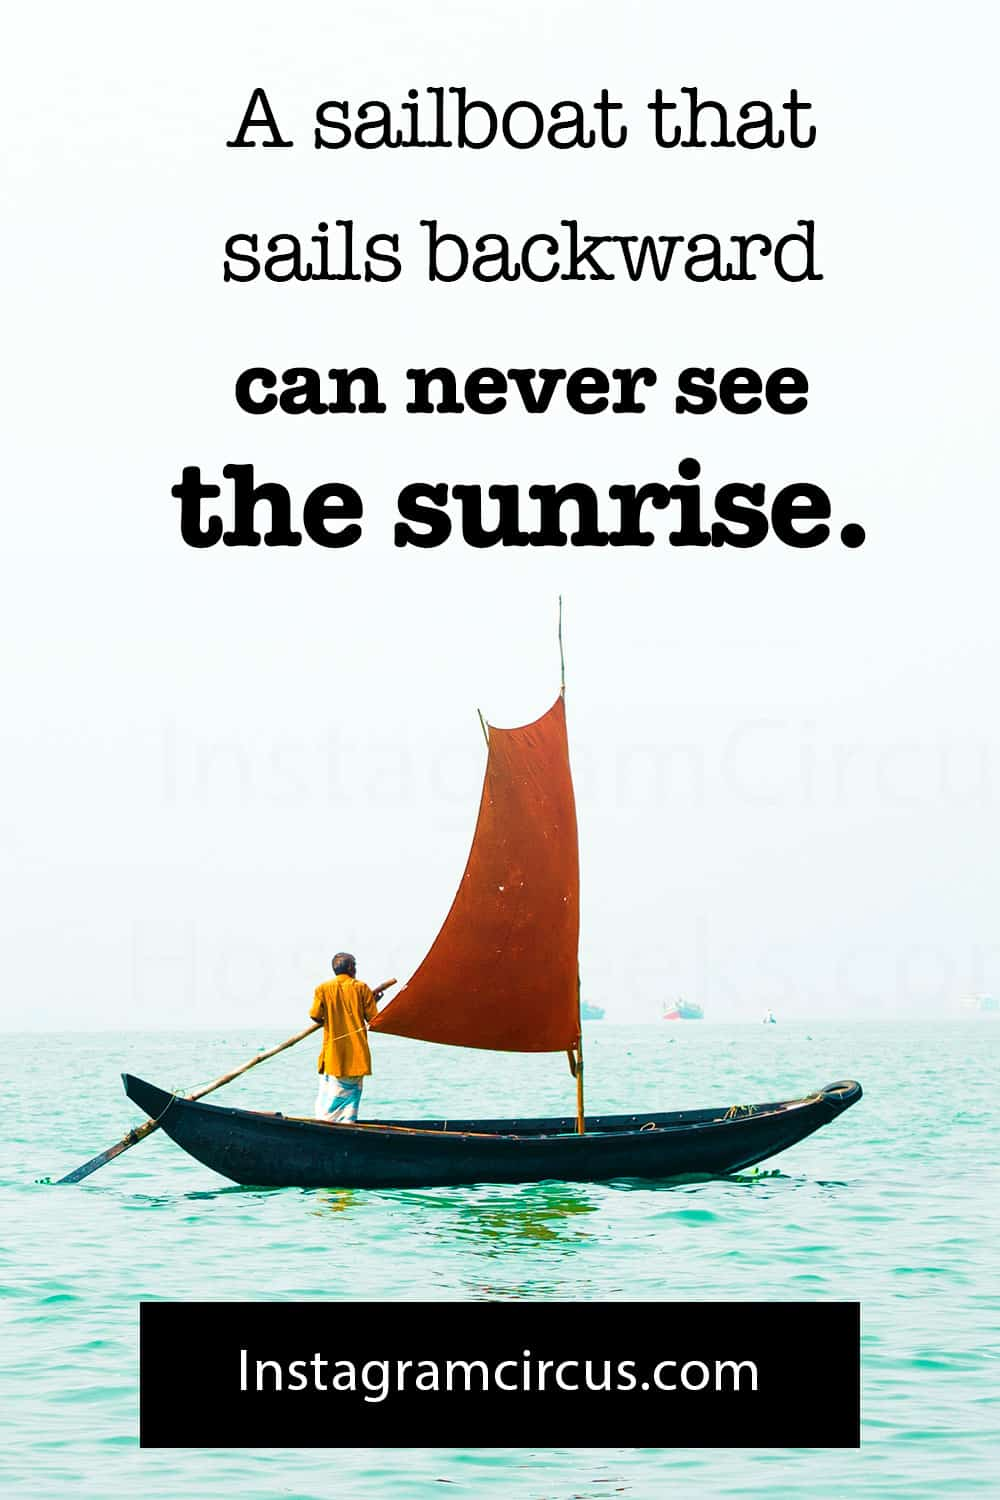 A sailboat that sails backward can never see the sunrise.